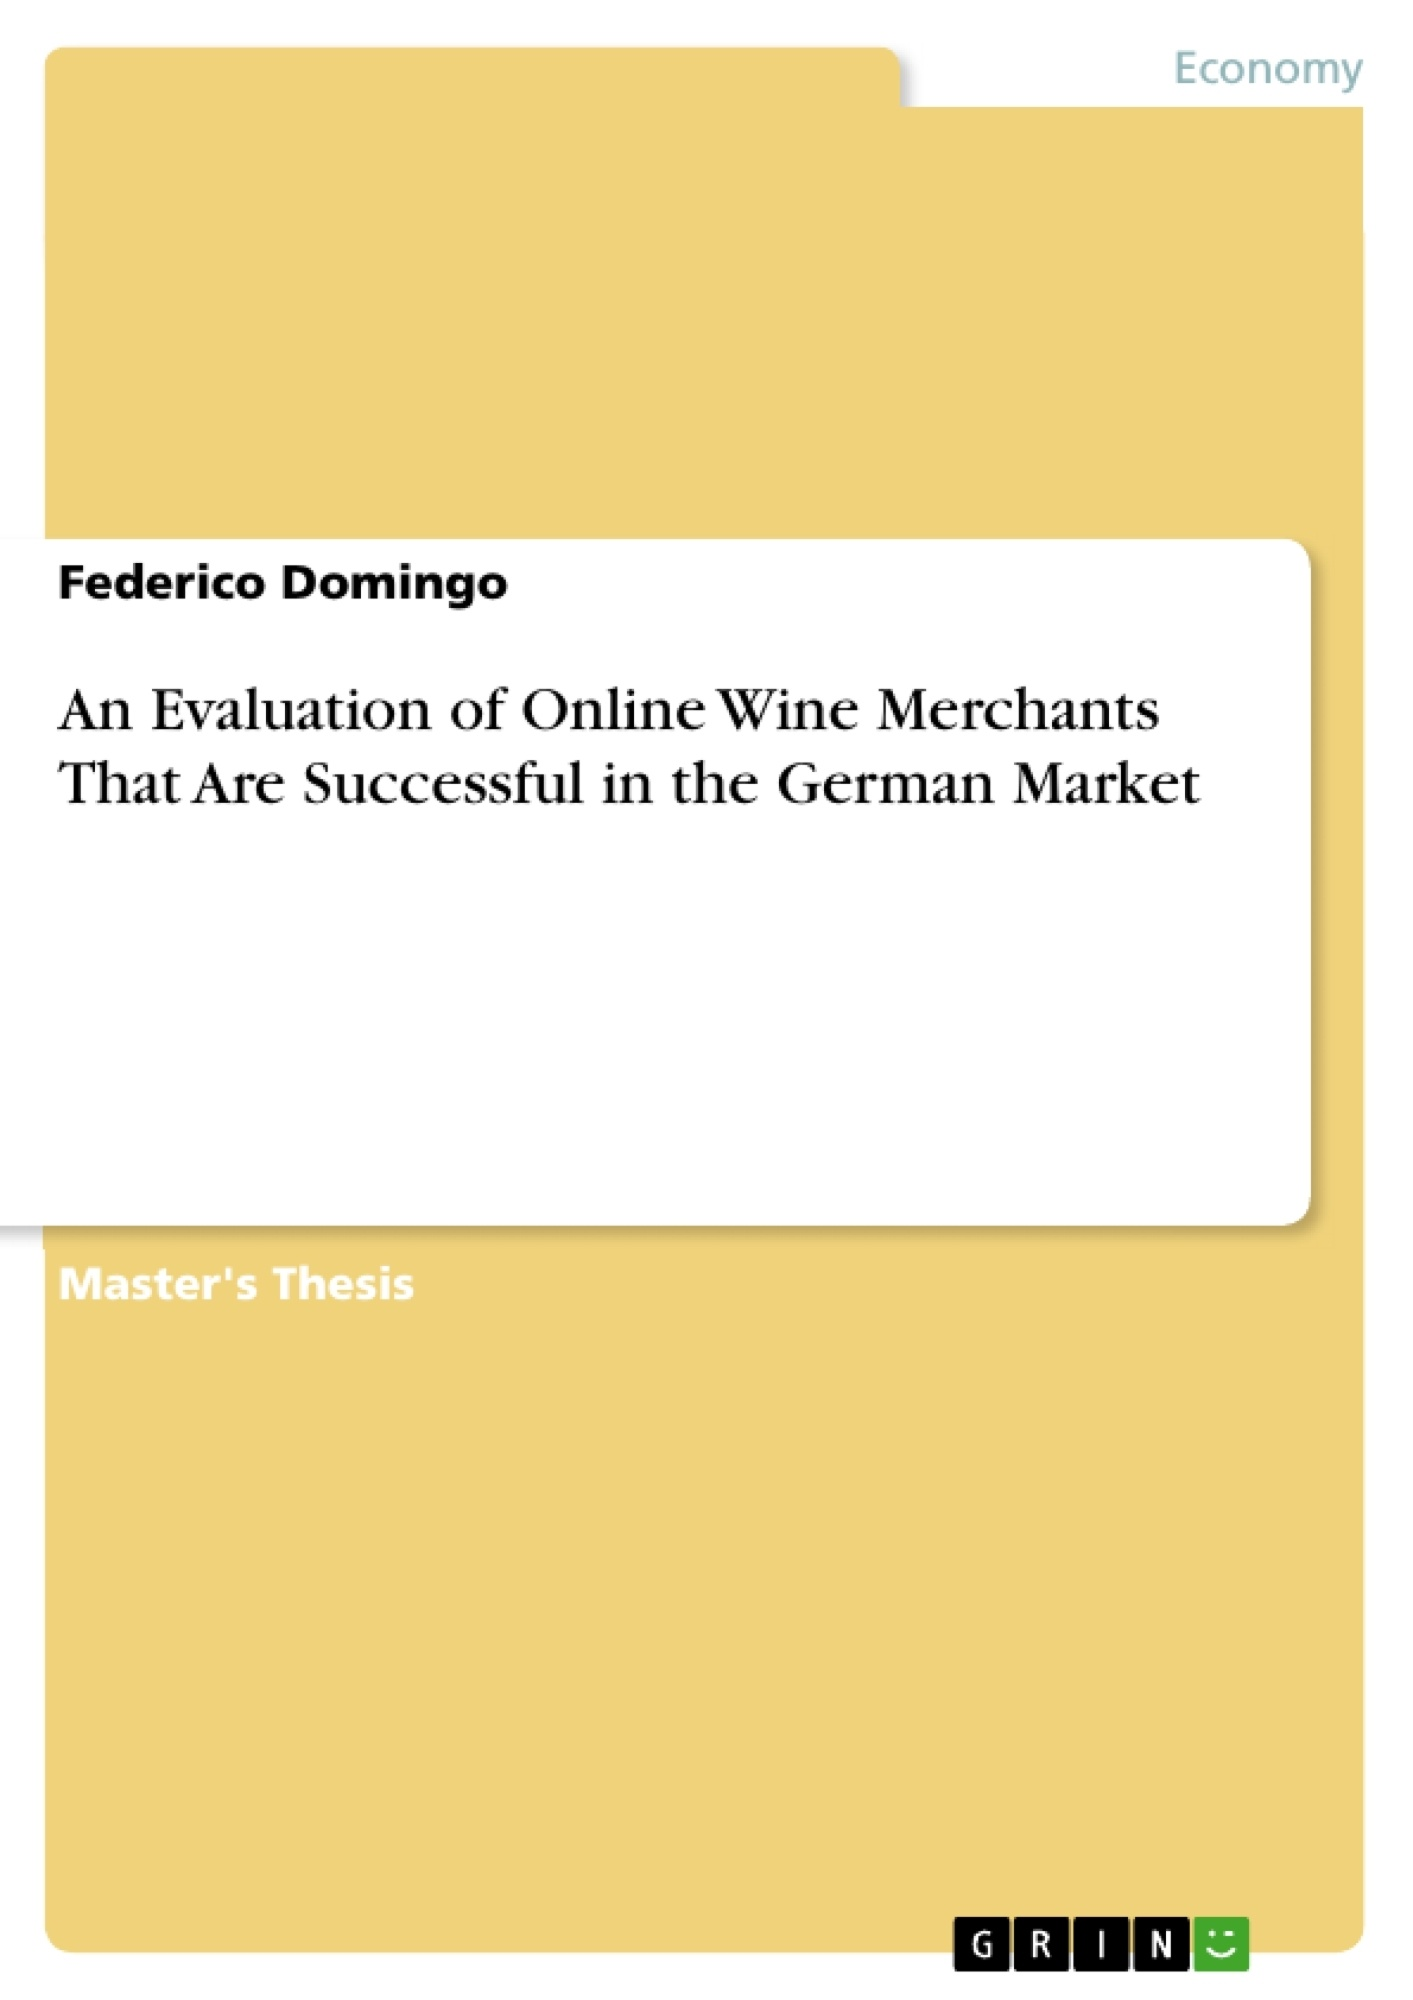 Title: An Evaluation of Online Wine Merchants That Are Successful in the German Market